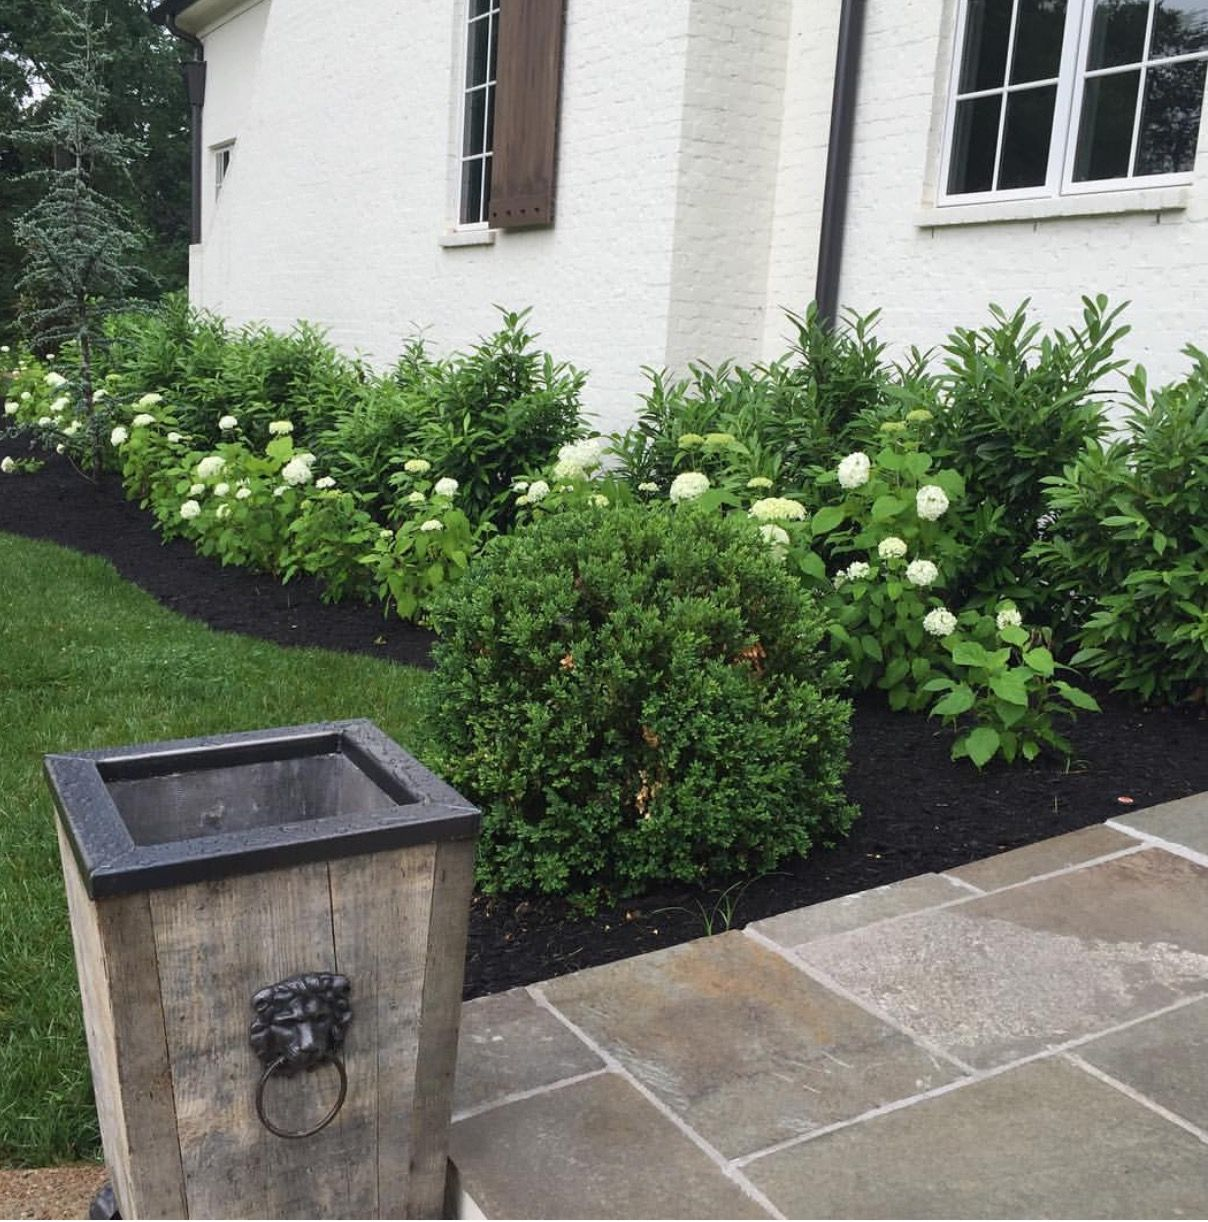 Front Yard Landscaping Ideas Wisconsin Blandscapingb Bb: Love The Beautiful Simple Landscape. Just Needs Boxwood